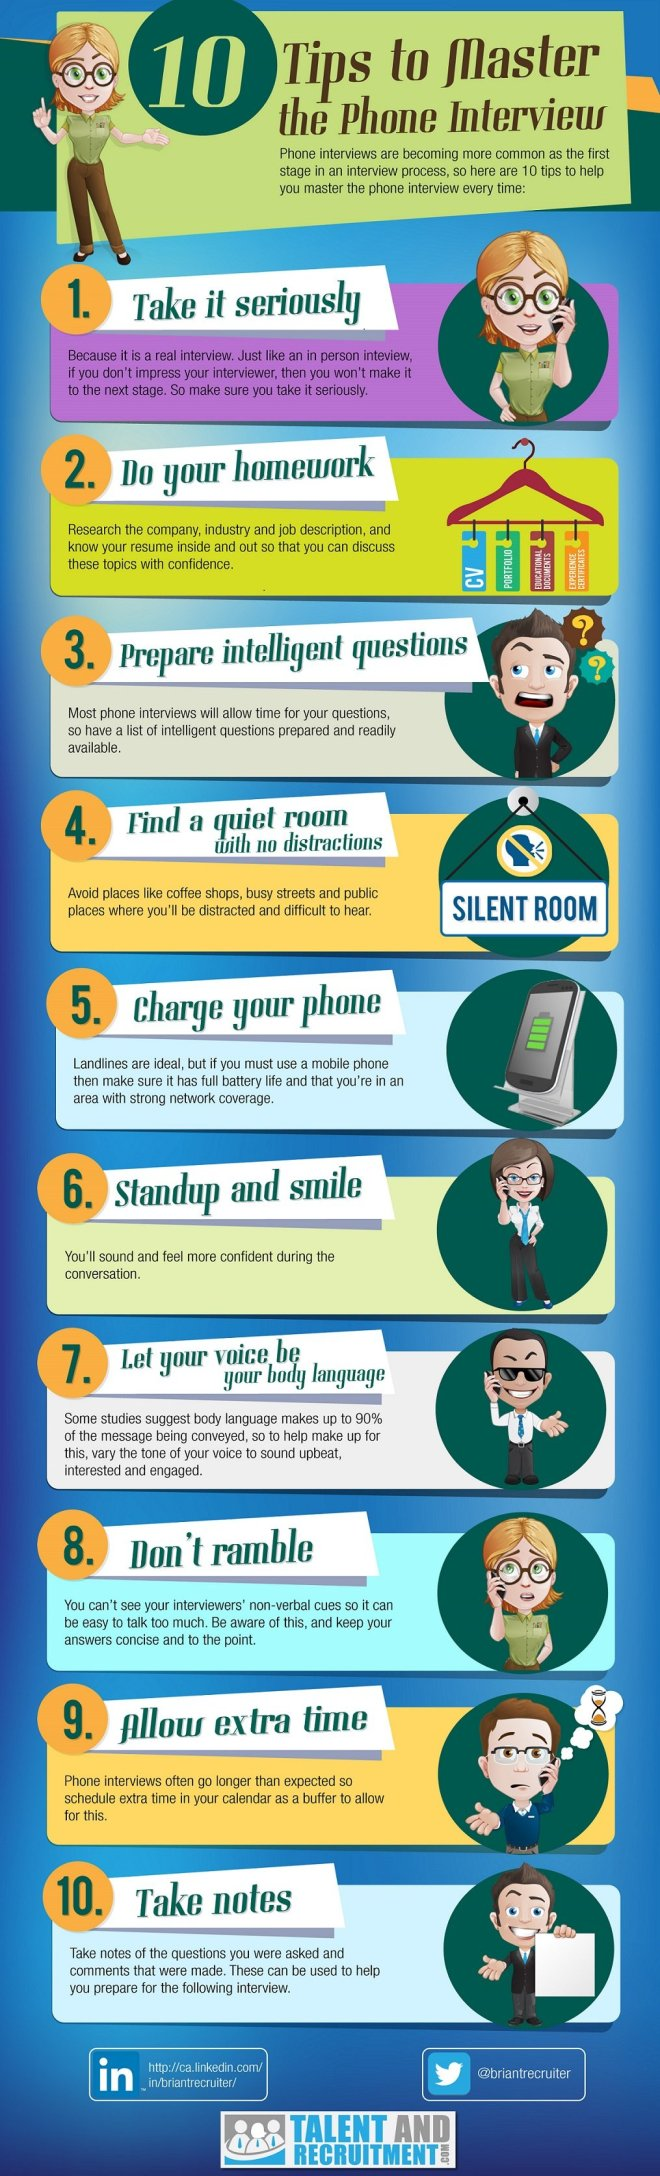 phone interview tips infographic Top 10 Tips for a Great Phone Interview